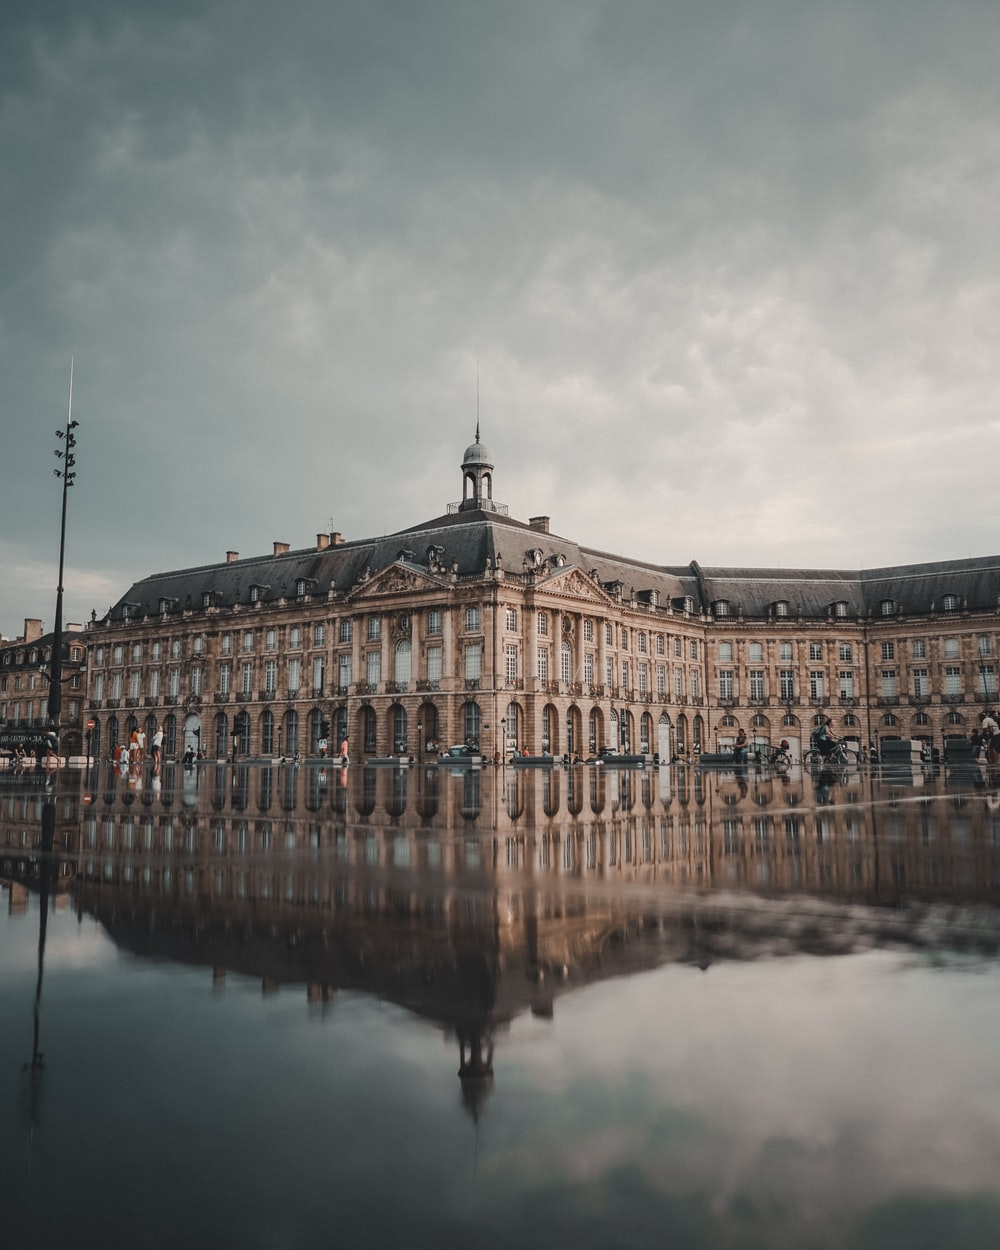 reflective photography of ancient building